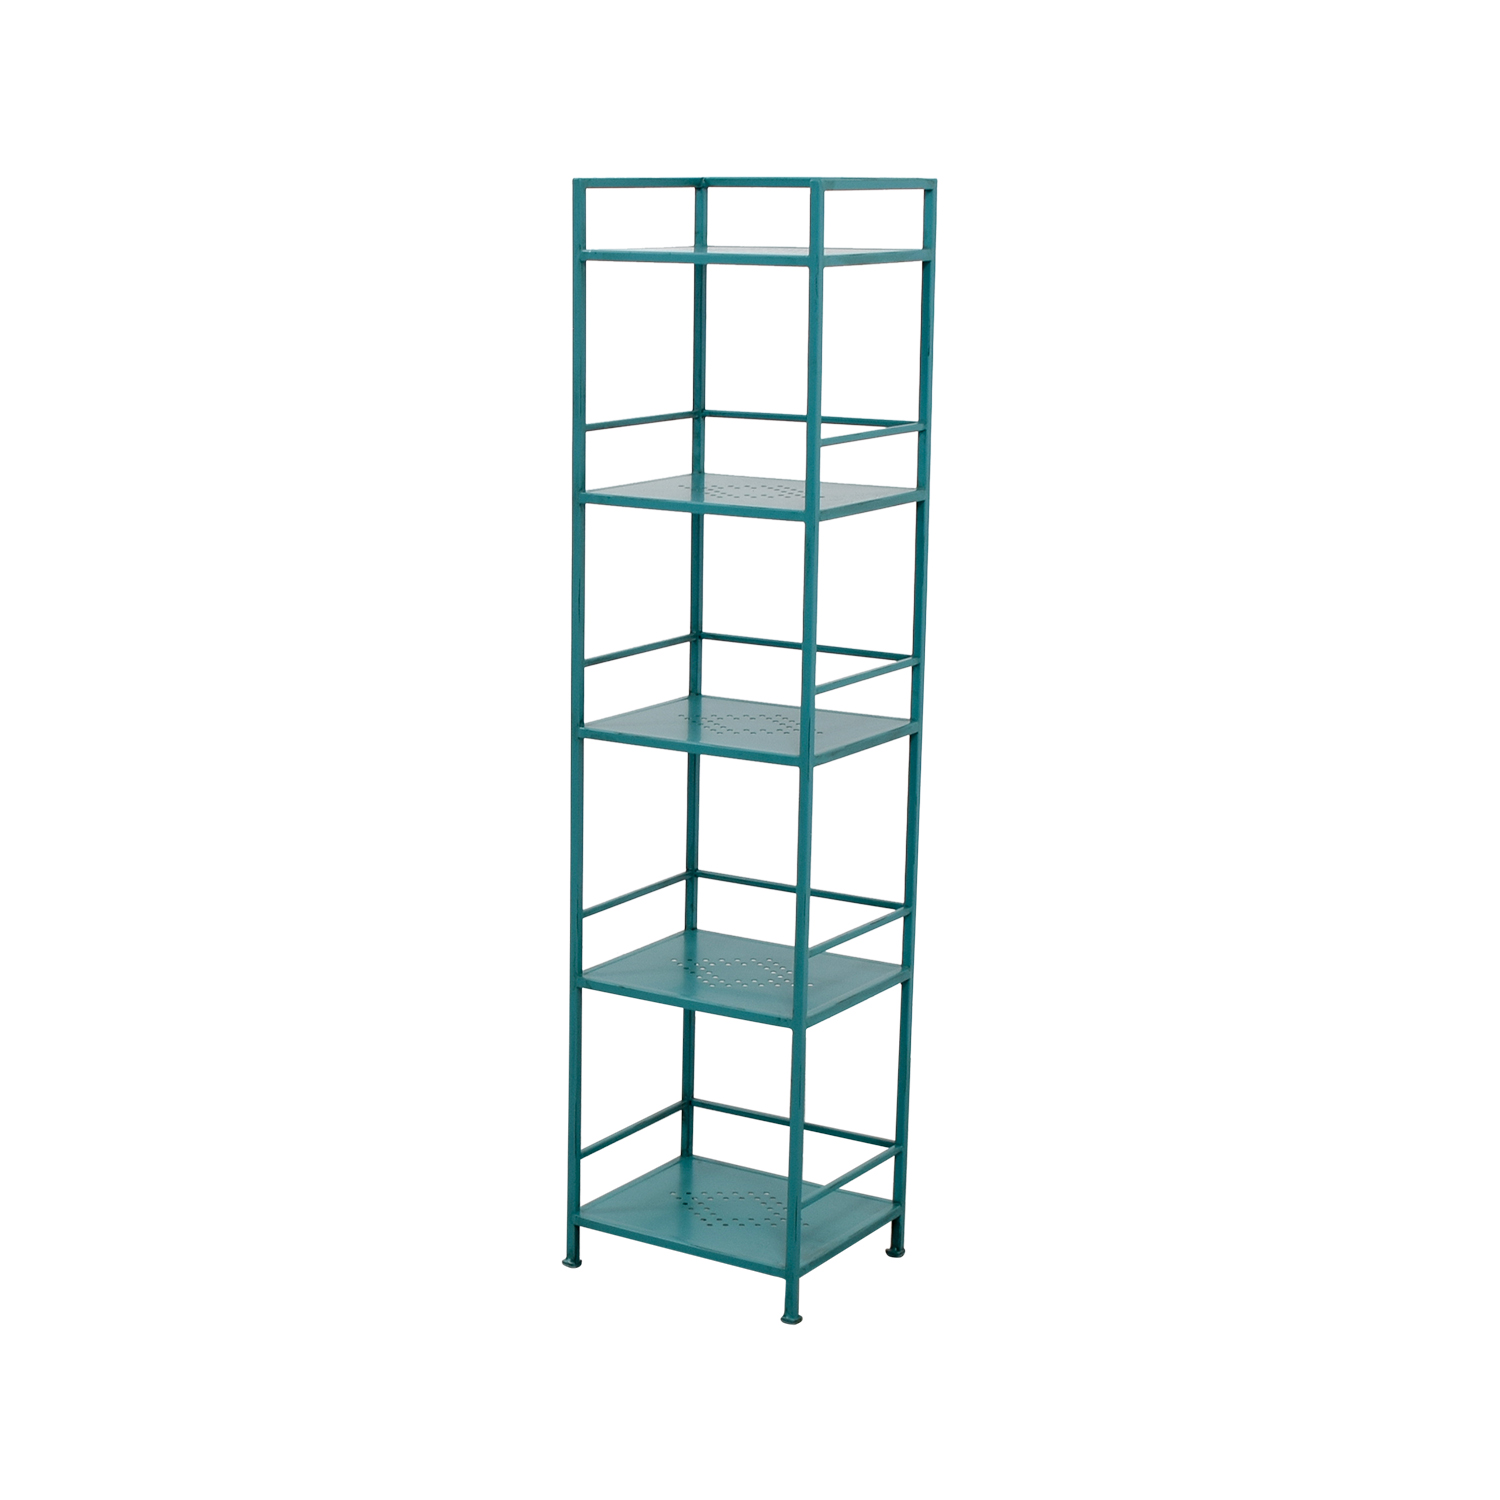 Pier 1 Imports Pier 1 Imports Weldon Turquoise Metal High Shelf coupon